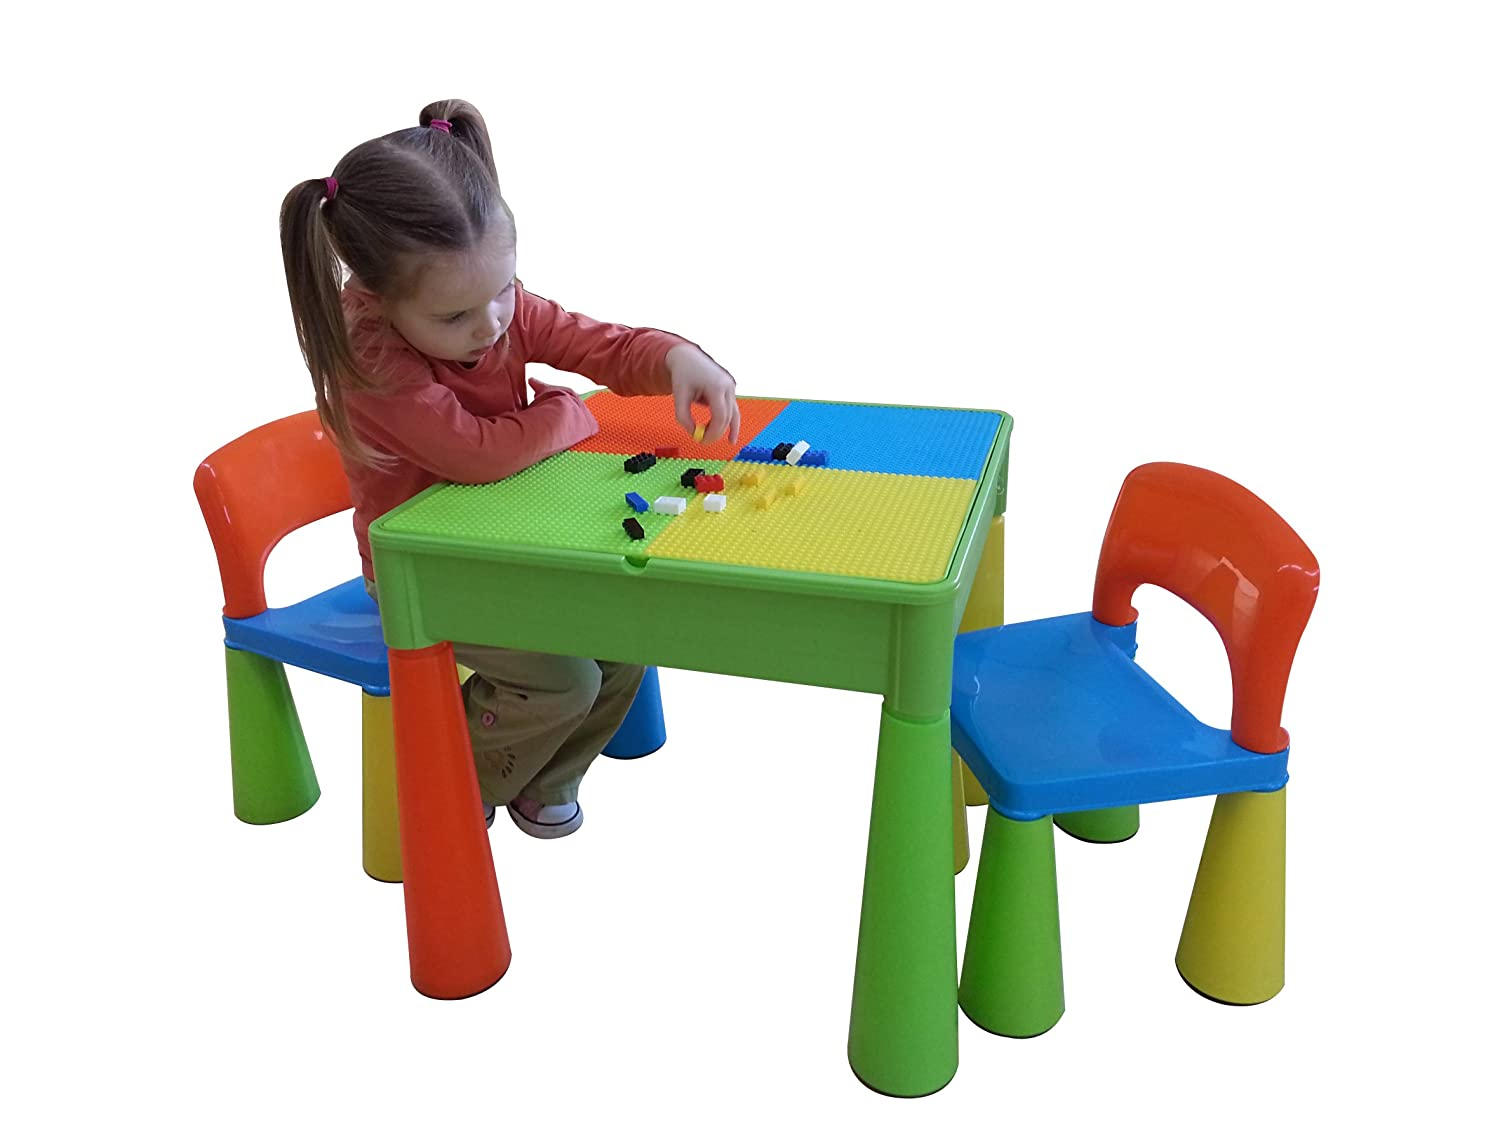 Perfect Amazon.com: Liberty House Toys 5 In 1 Activity Table And Chairs With  Writing Top/Lego/Sand/Water/Storage By Liberty House Toys: Toys U0026 Games